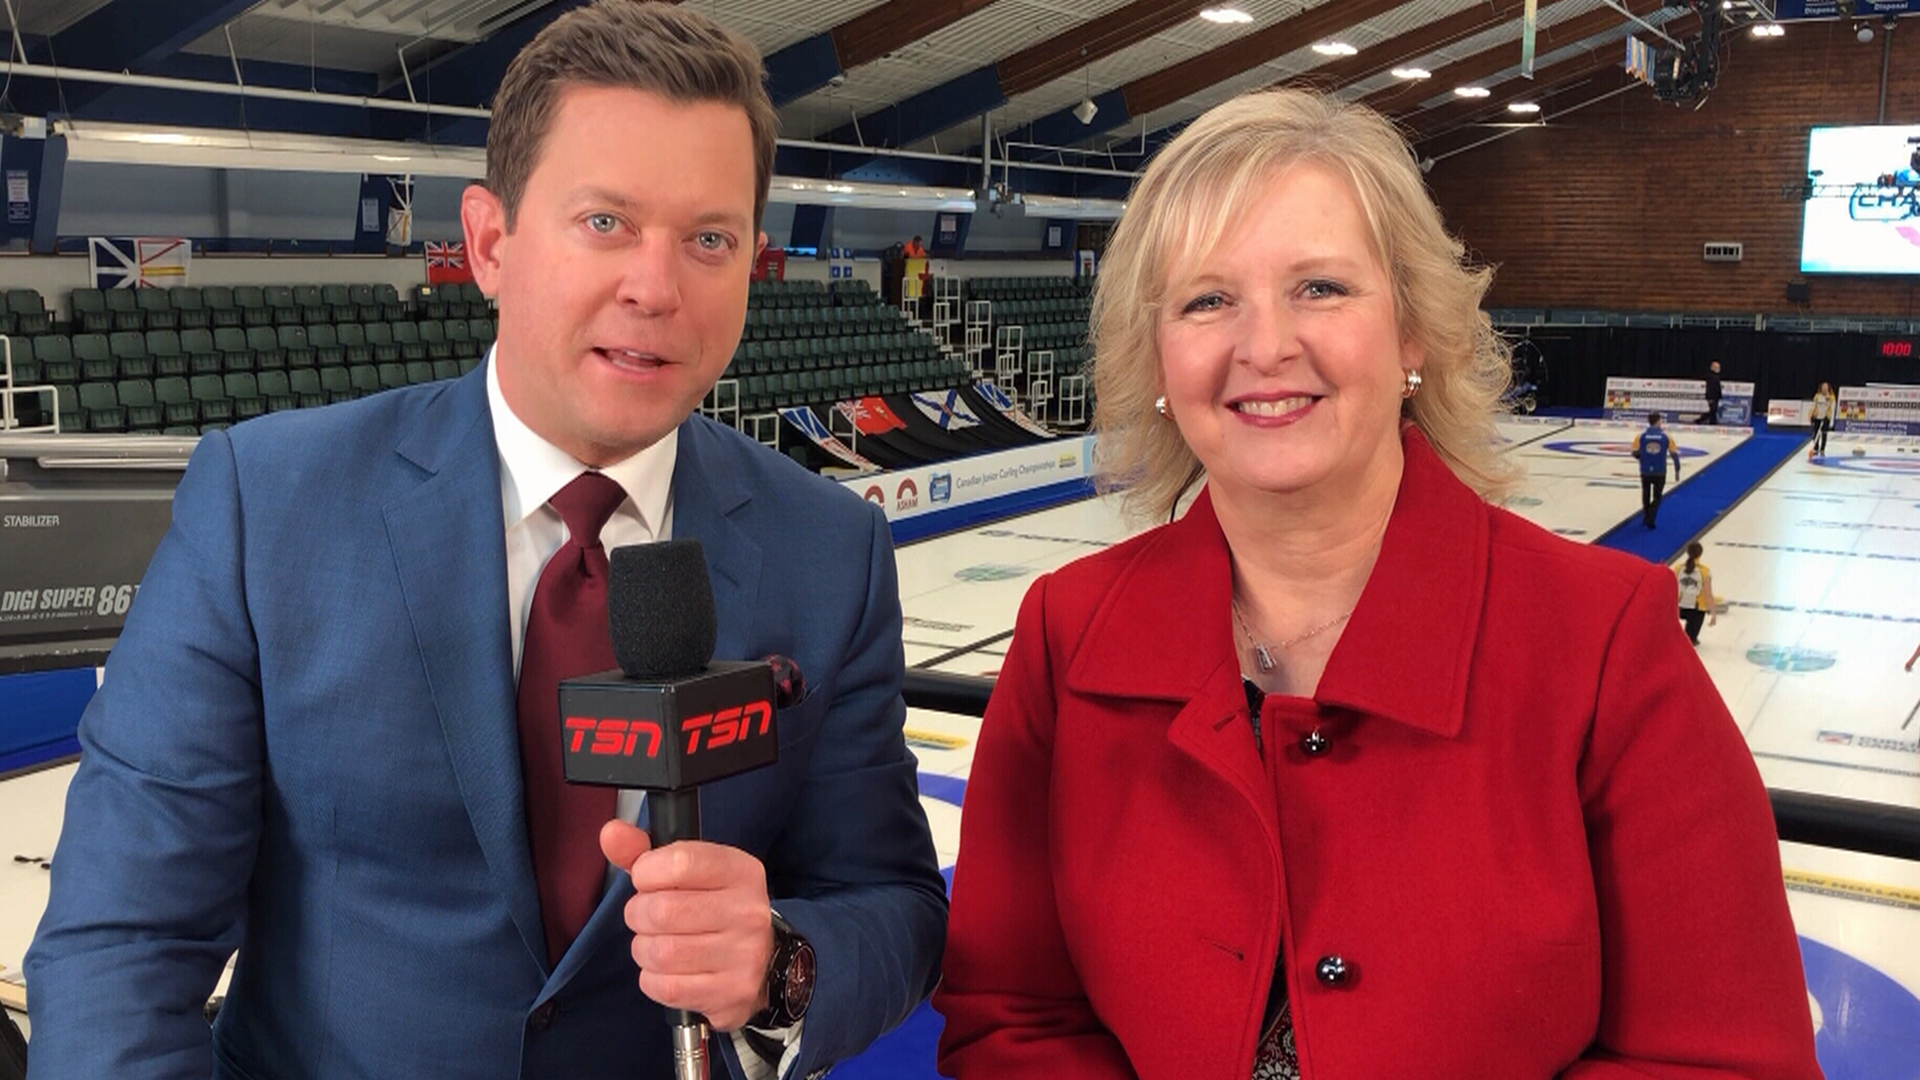 Gauthier set to call Canadian Juniors gold medal game featuring her son Jacques